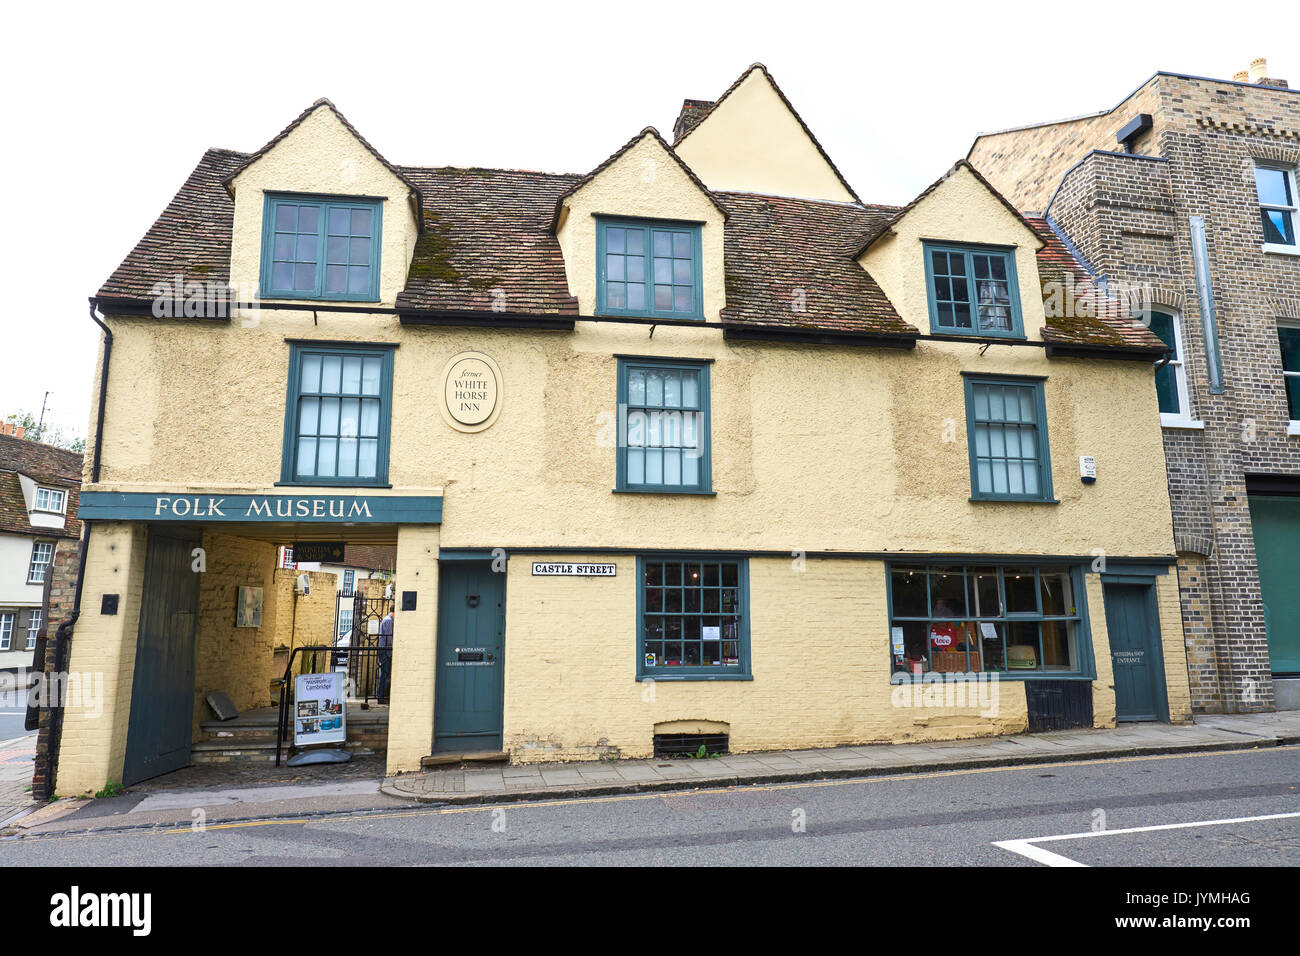 Museum Of Cambridge One Of The Oldest Social History Museum In The UK, Castle Street, Cambridge, UK - Stock Image